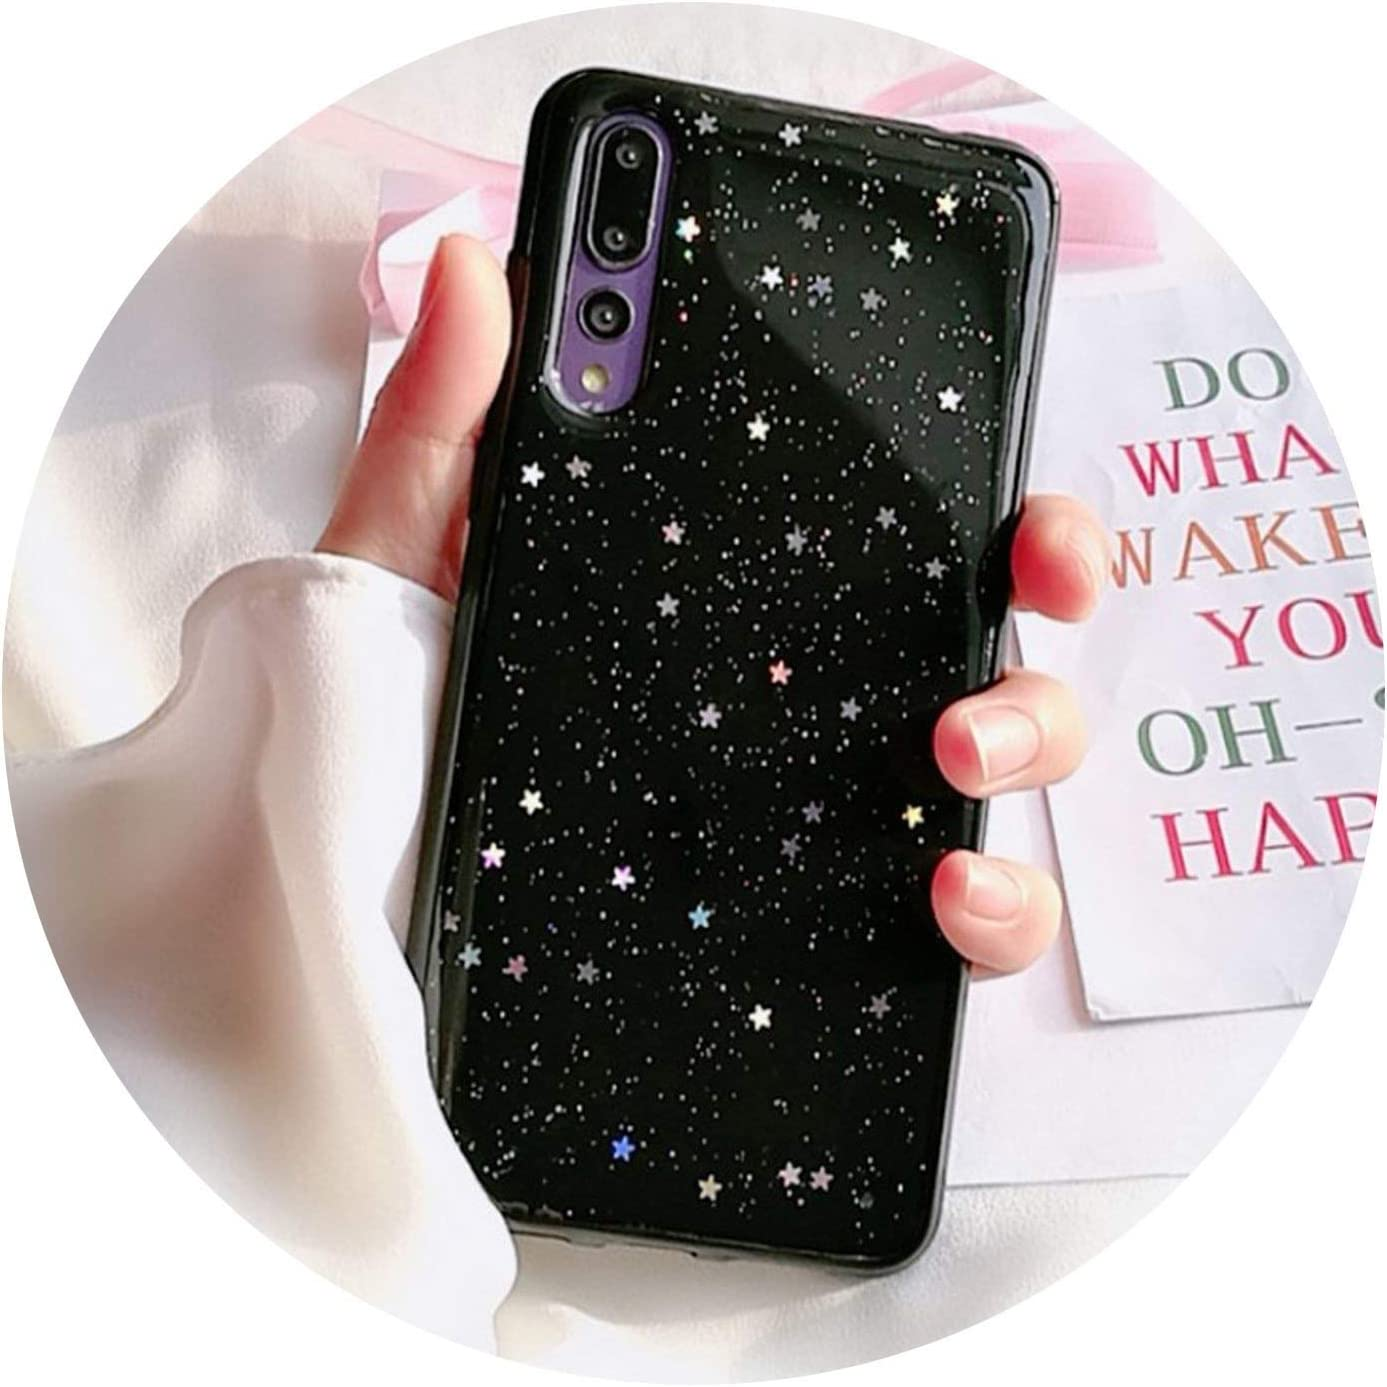 Bling Star Clear Soft Silicon Case for Huawei P20 Pro P Smart for Honor 7C 7A Pro V10 9 10 8 P10 P8 P9 Lite 2017 for Nova 3E 3 2s 2 Plus,3,P10 Plus